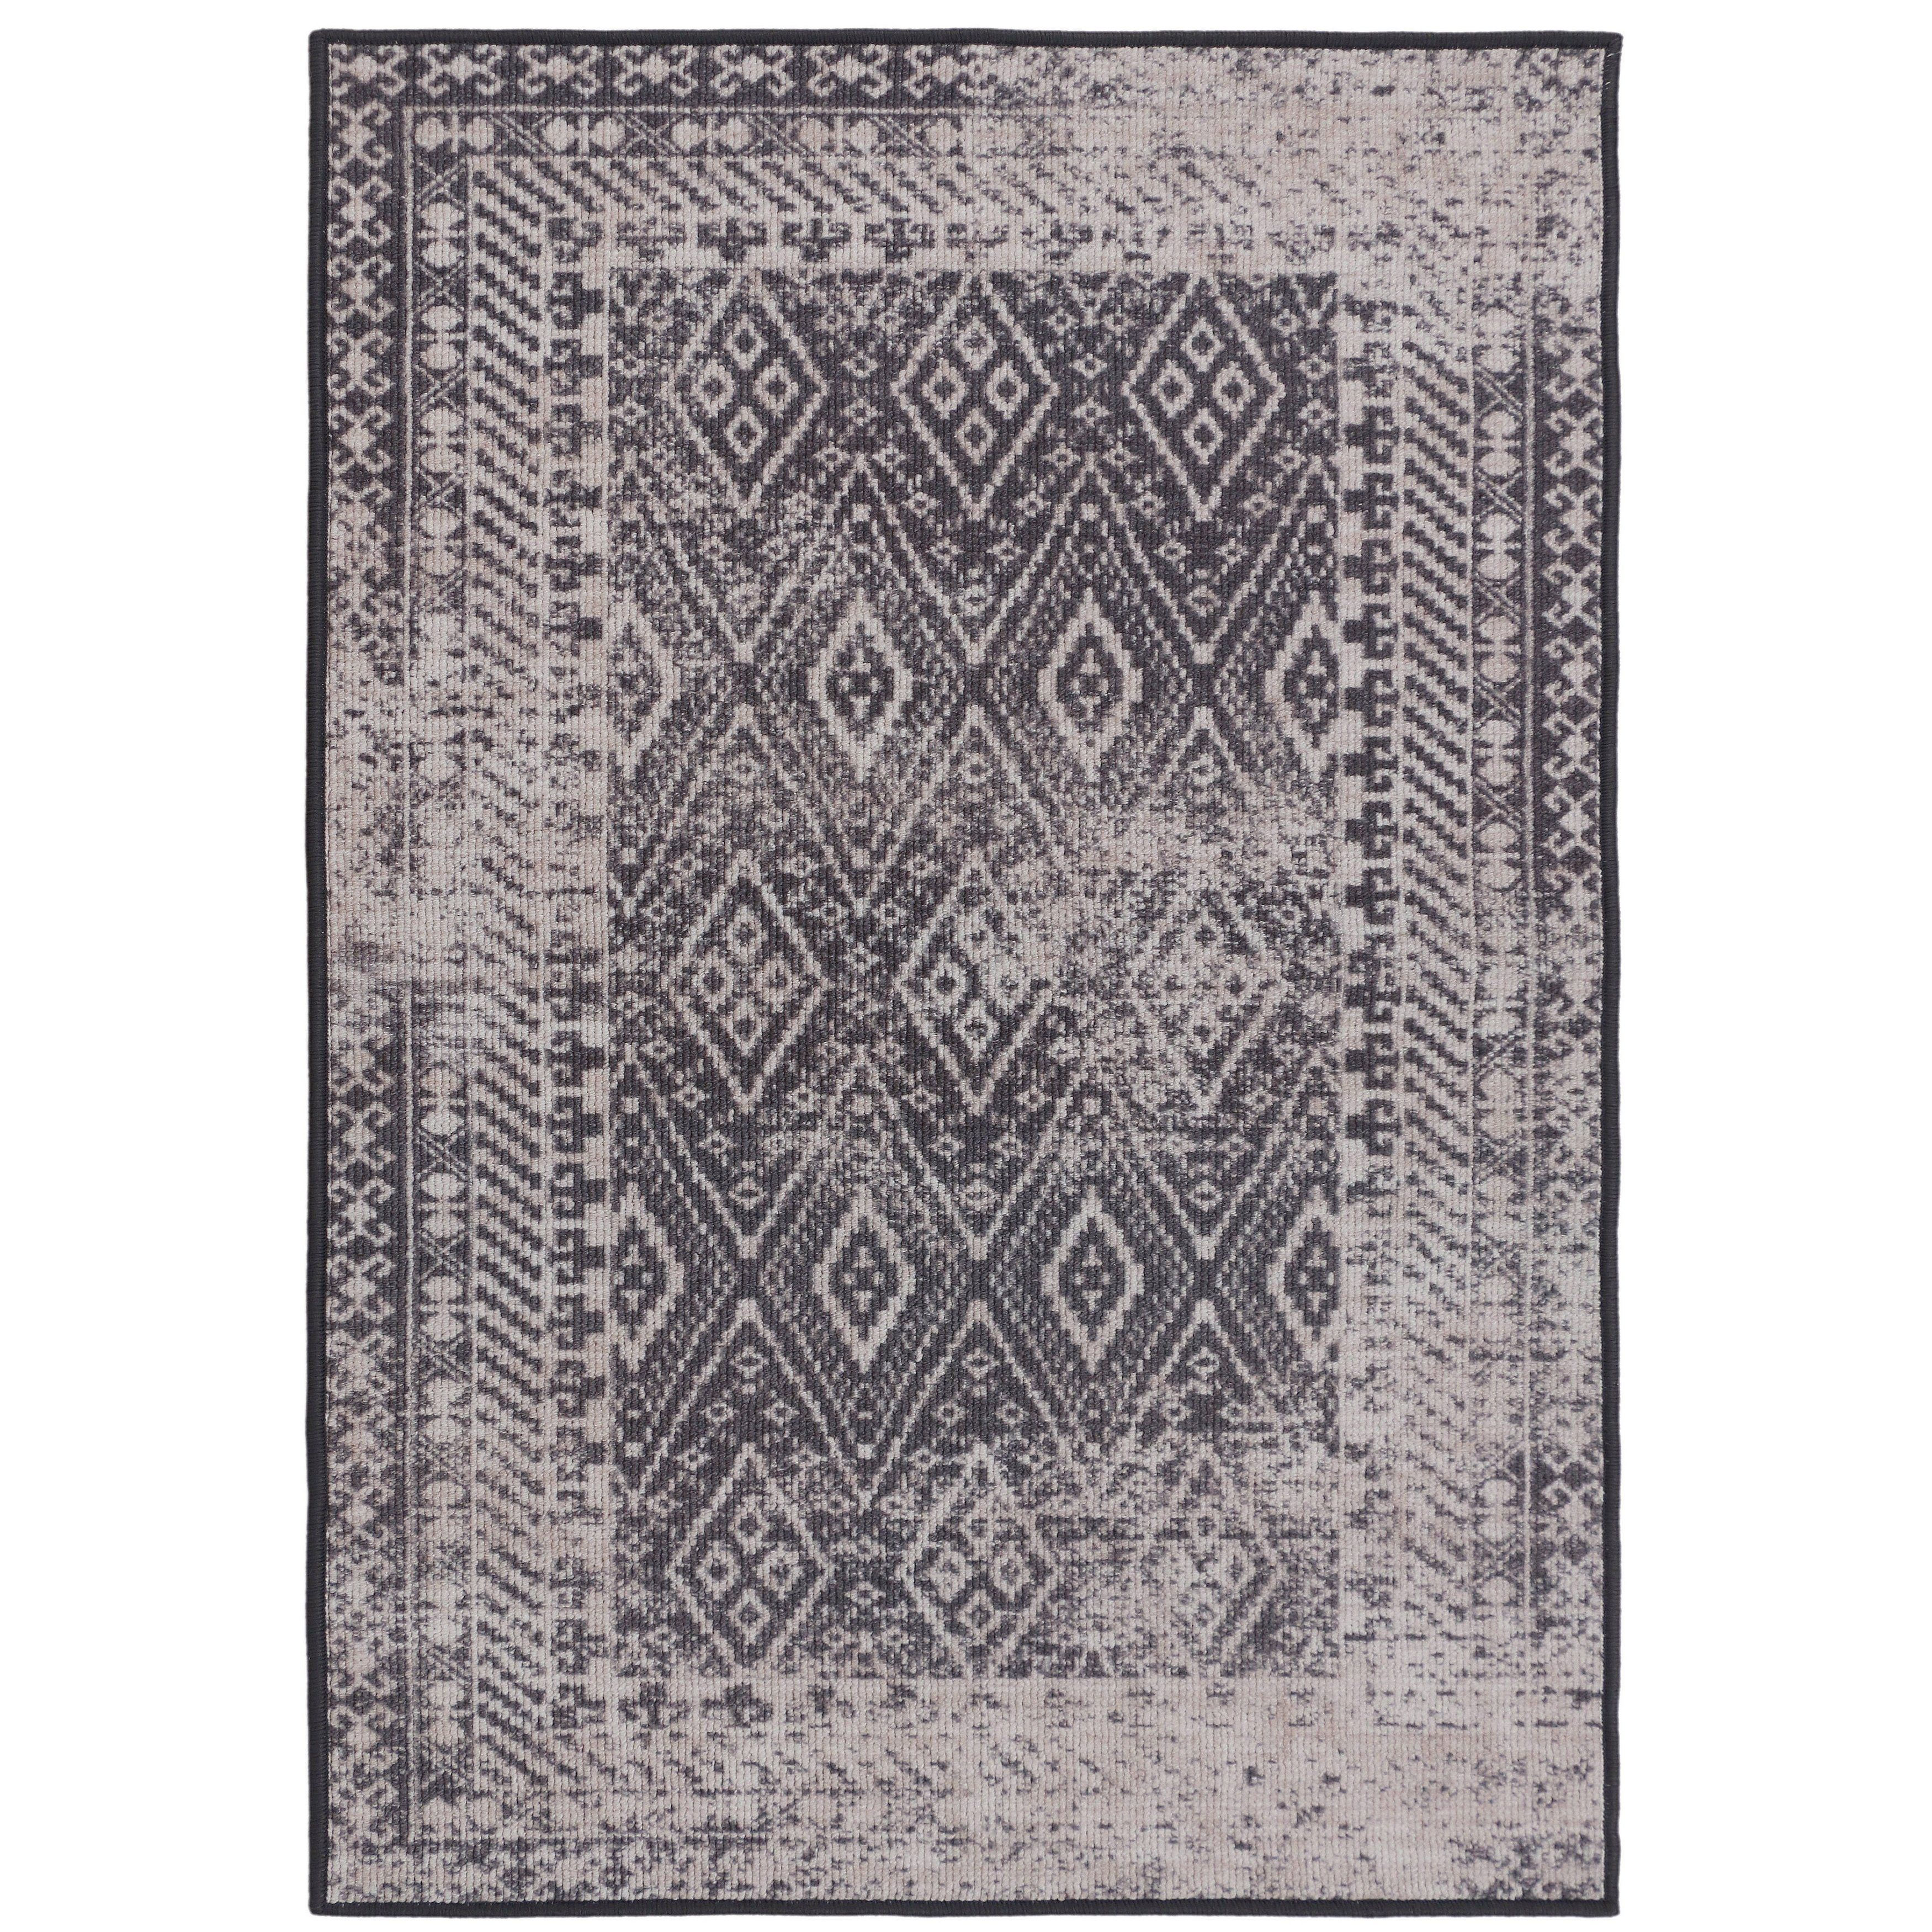 Pin By Eliza Schultz On Living Room Decor Area Rugs Transitional Area Rugs Grey Area Rug